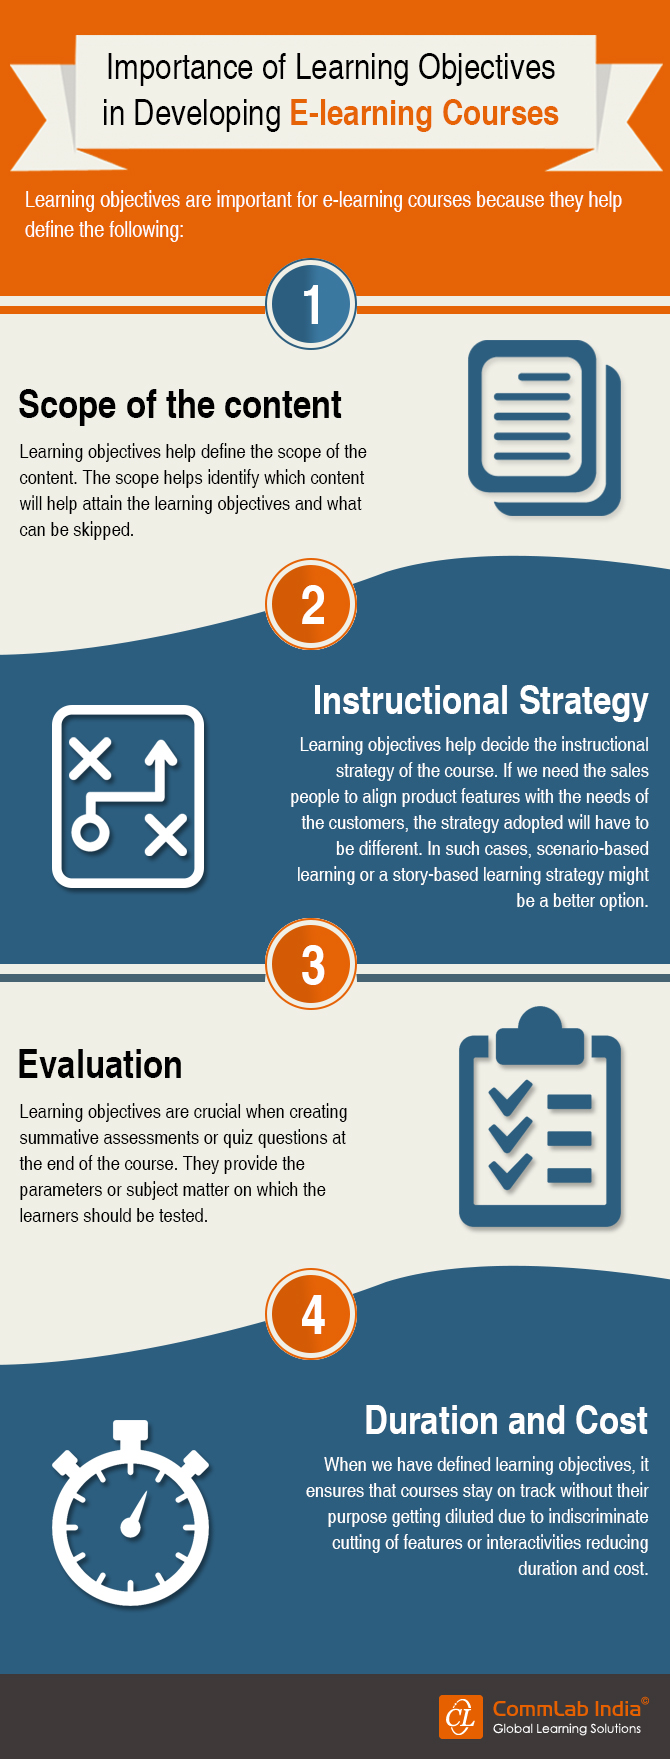 The Importance of Learning Objectives in Developing E-learning Courses [Infographic]